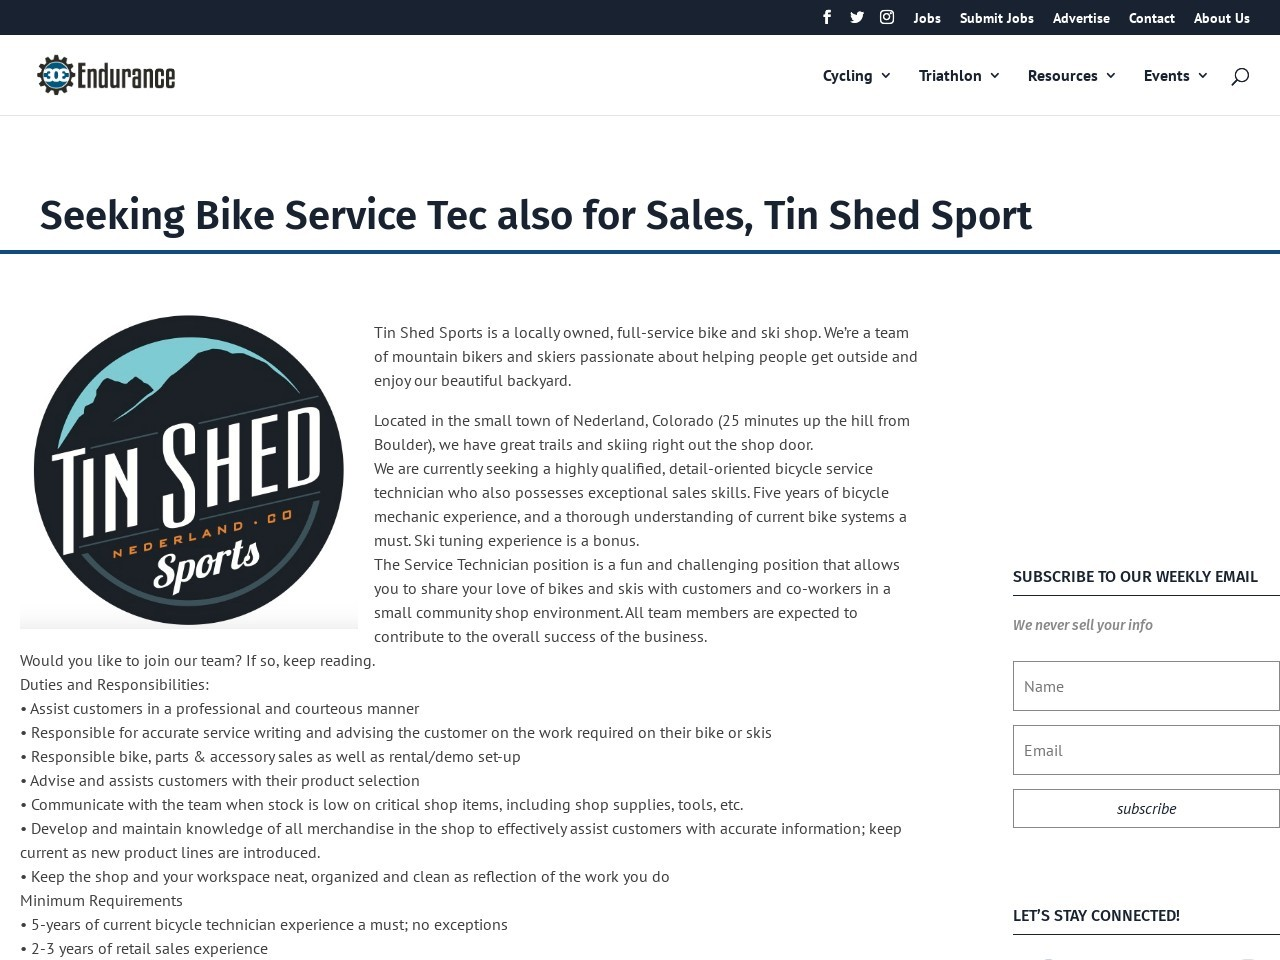 Seeking Bike Service Tec also for Sales, Tin Shed Sport